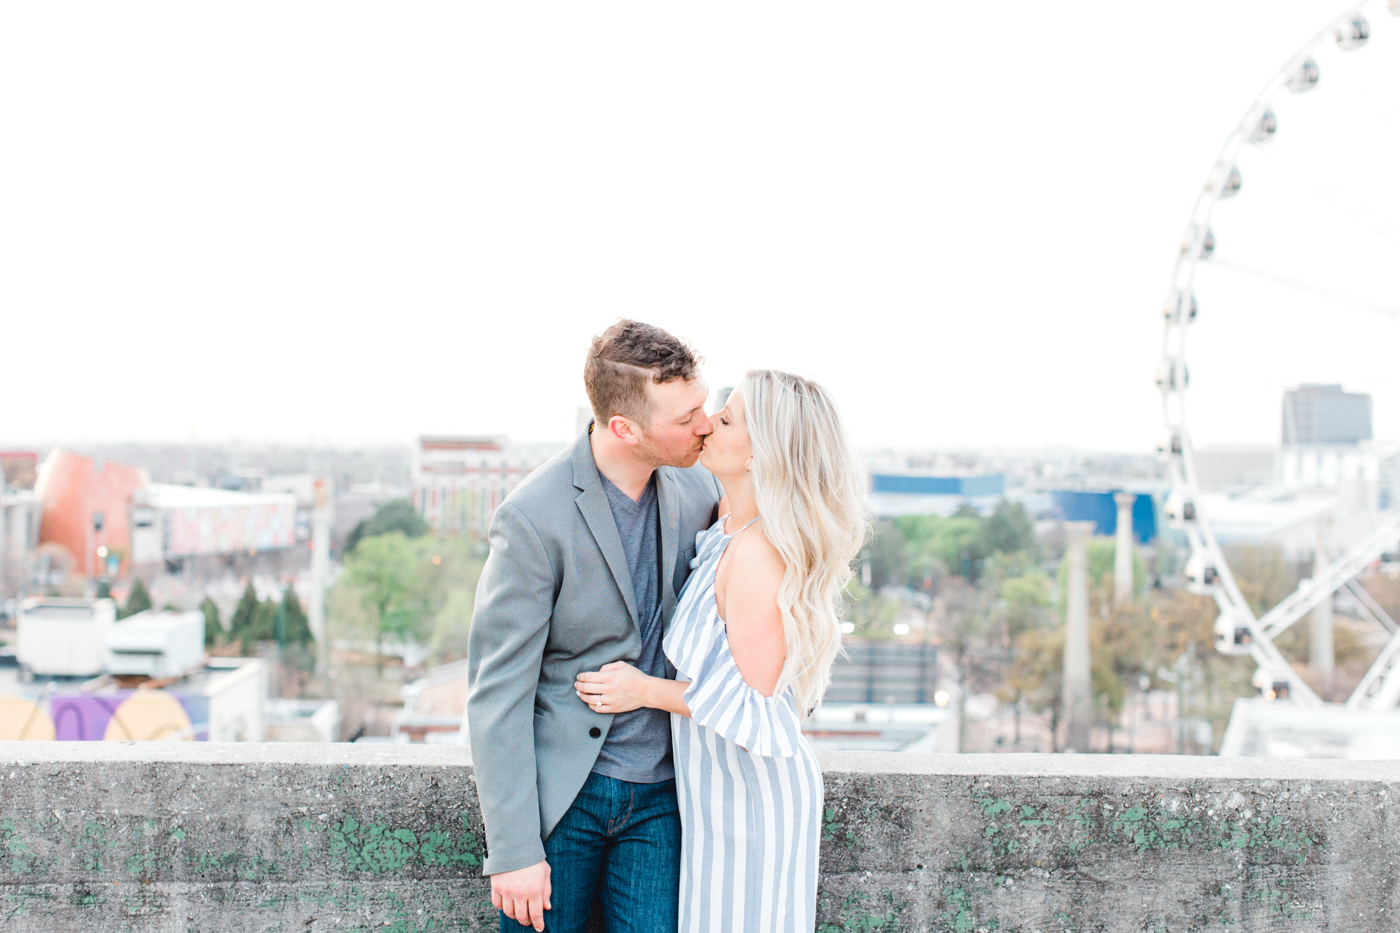 four corners photography best atlanta wedding photographer downtown atlanta engagement session engagement proposal ventanas downtown atlanta wedding atlanta wedding photographer-33.jpg